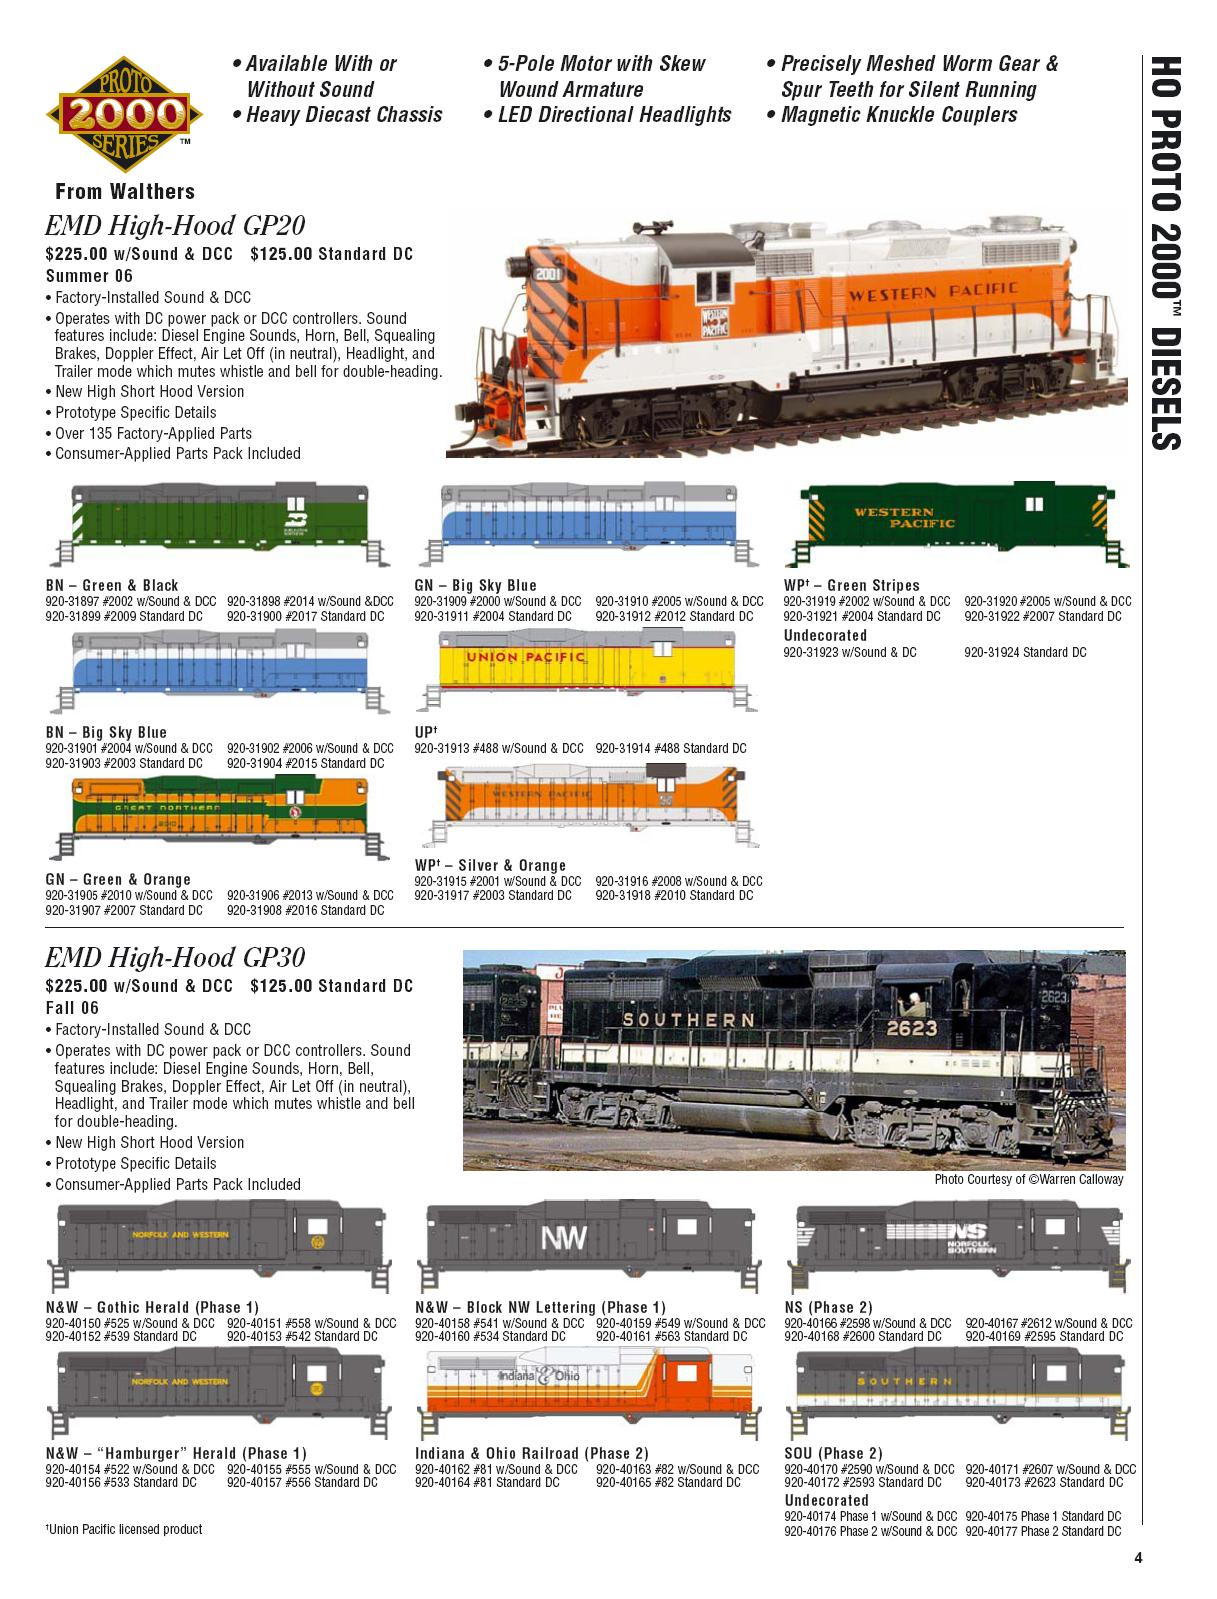 Walthers 2006 Cataloge Diesels page 1